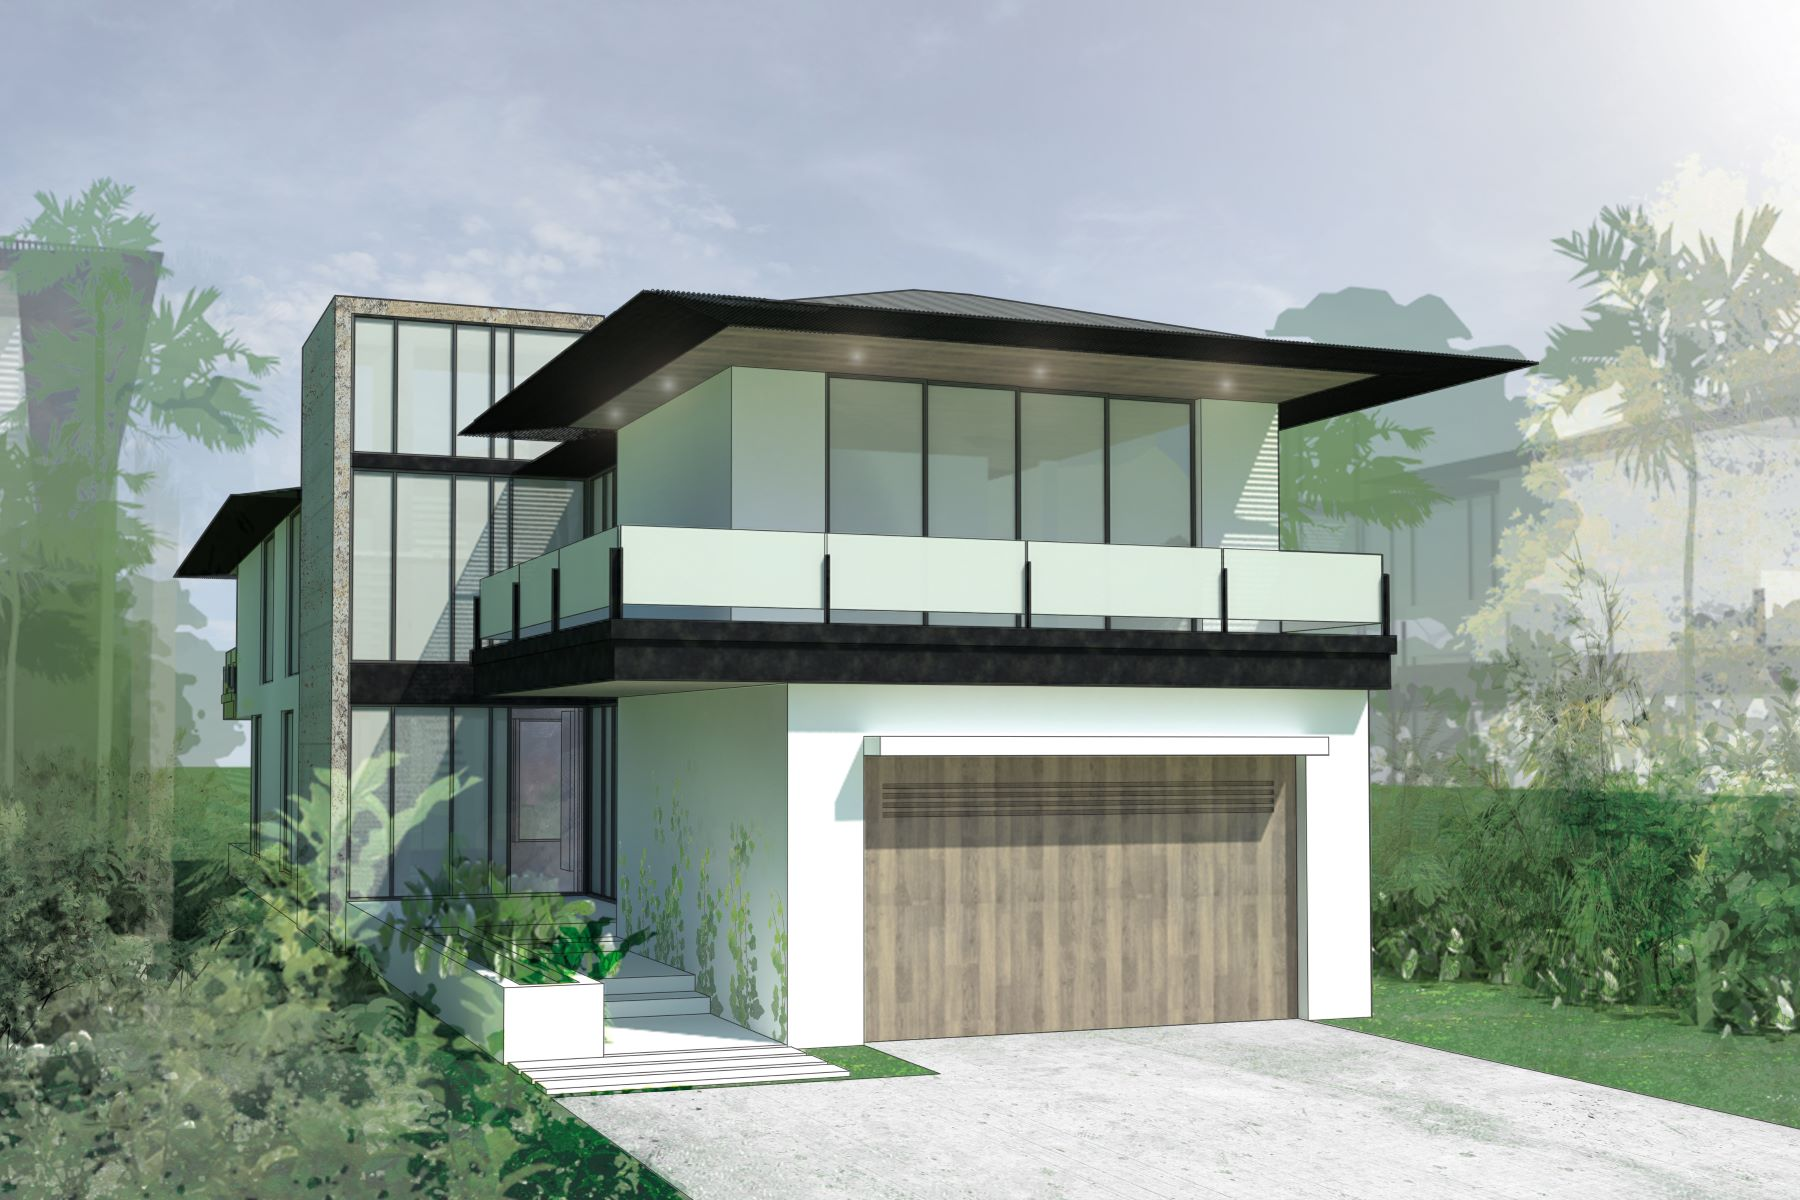 Property para Venda às Direct Riverfront New Construction 4844 S Harbor Drive Vero Beach, Florida 32967 Estados Unidos